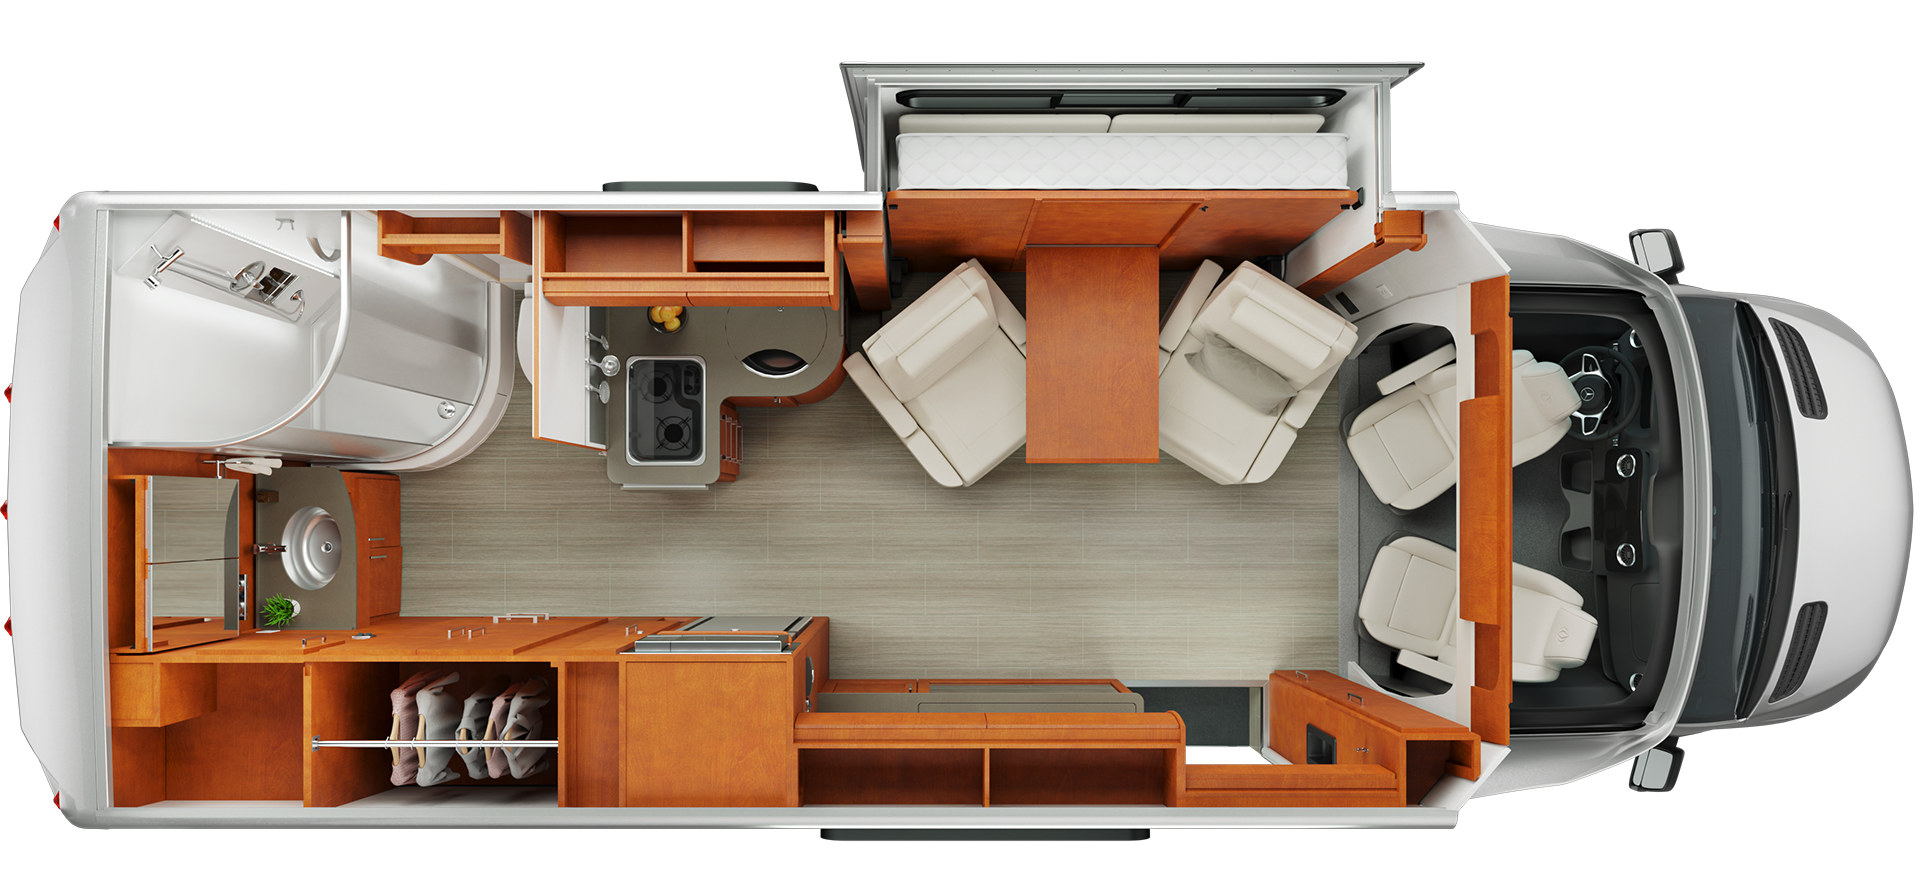 Floorplan Of A House Unity Floorplans Leisure Travel Vans